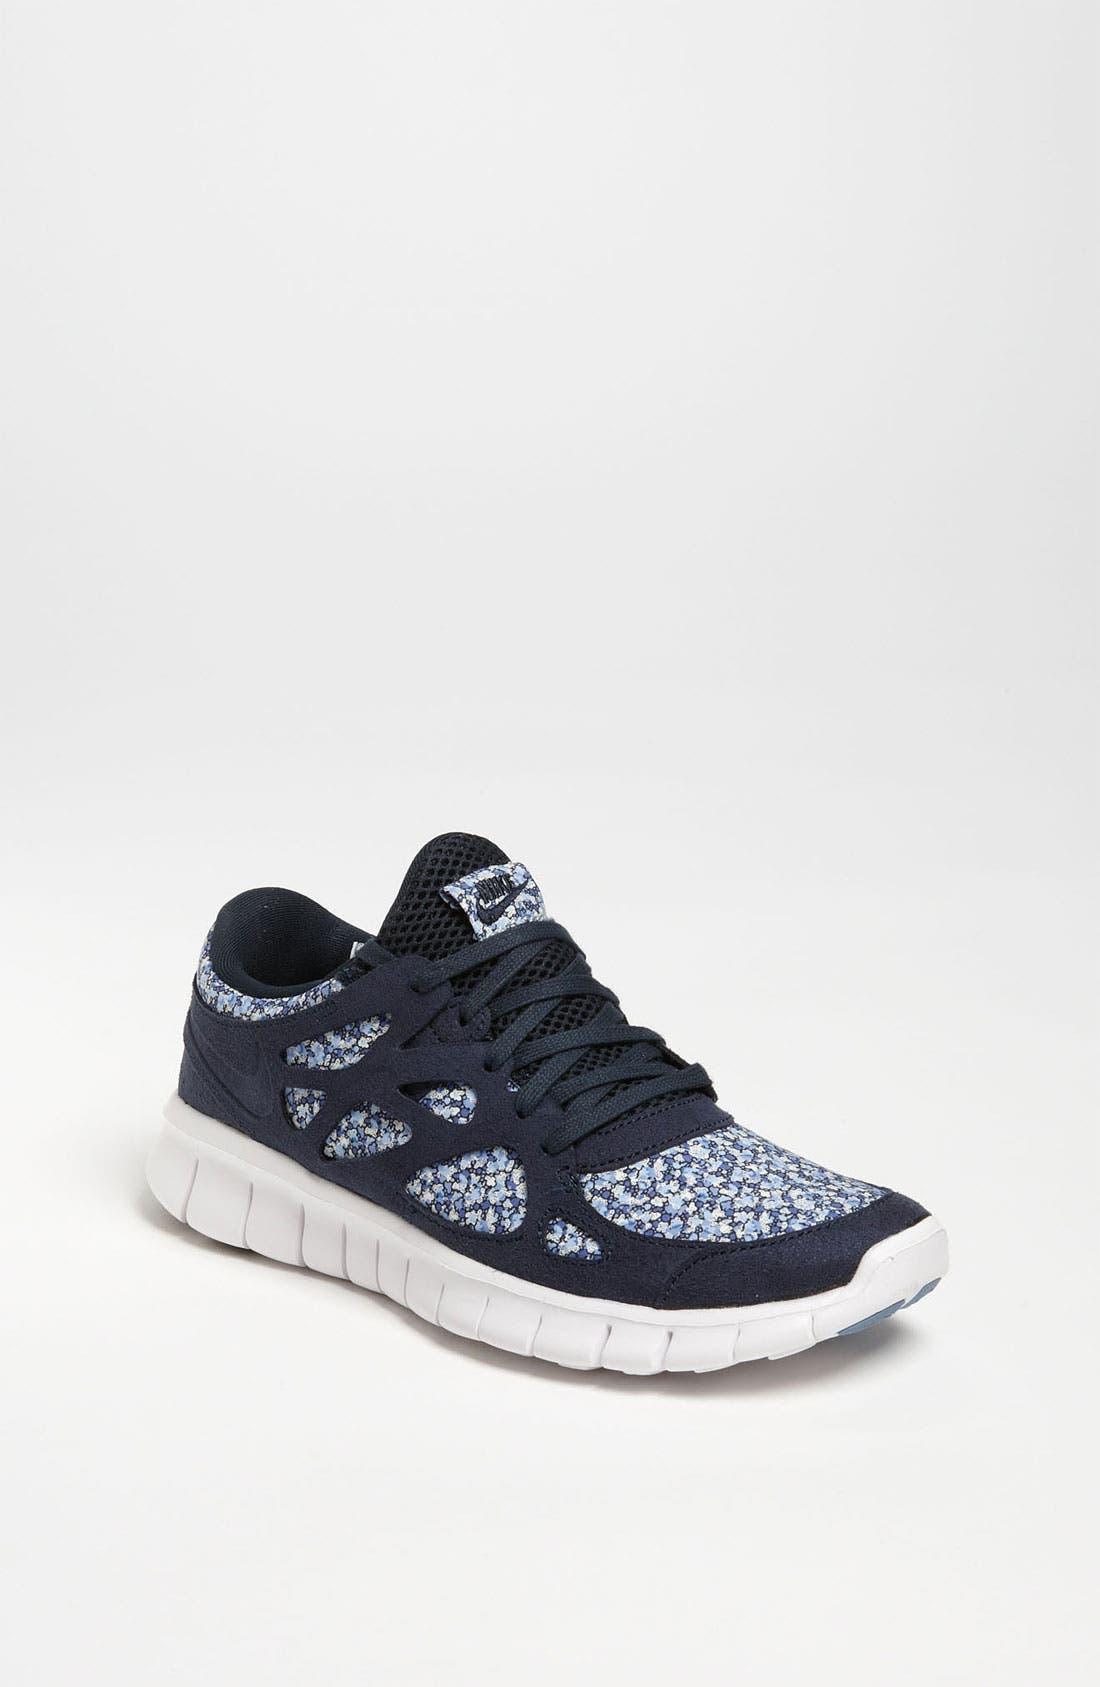 Main Image - Nike 'Free Run 2 Liberty' Sneaker (Women)